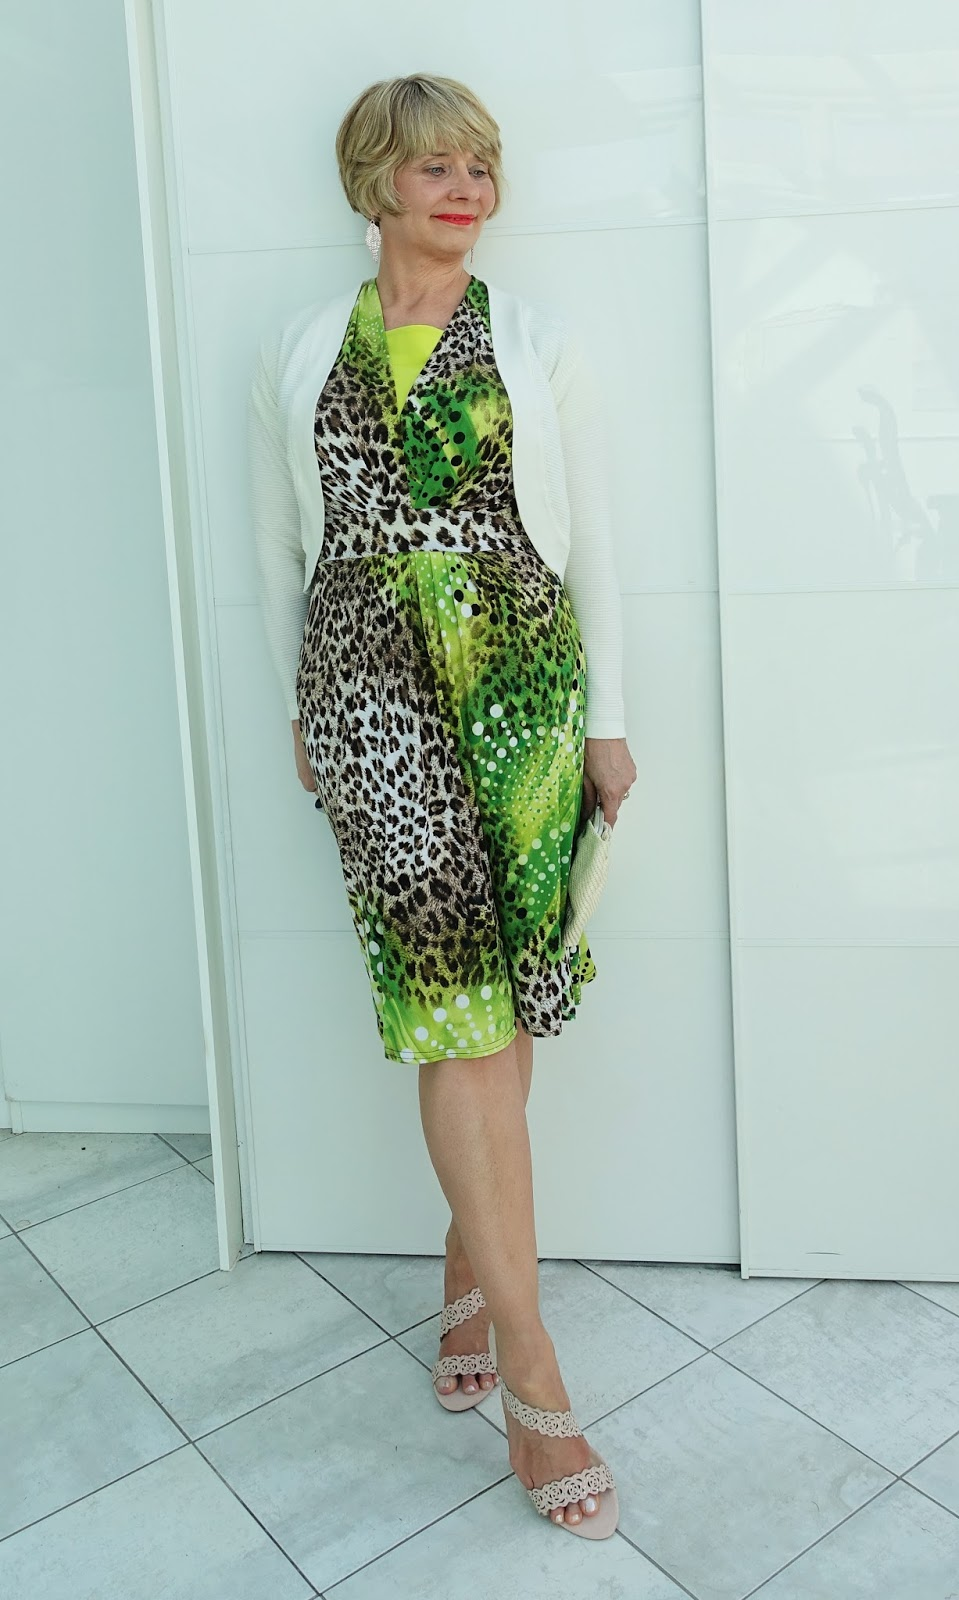 A flattering Joseph Ribkoff dress in leopard and lime worn with nude Lotus Cattleya sandals